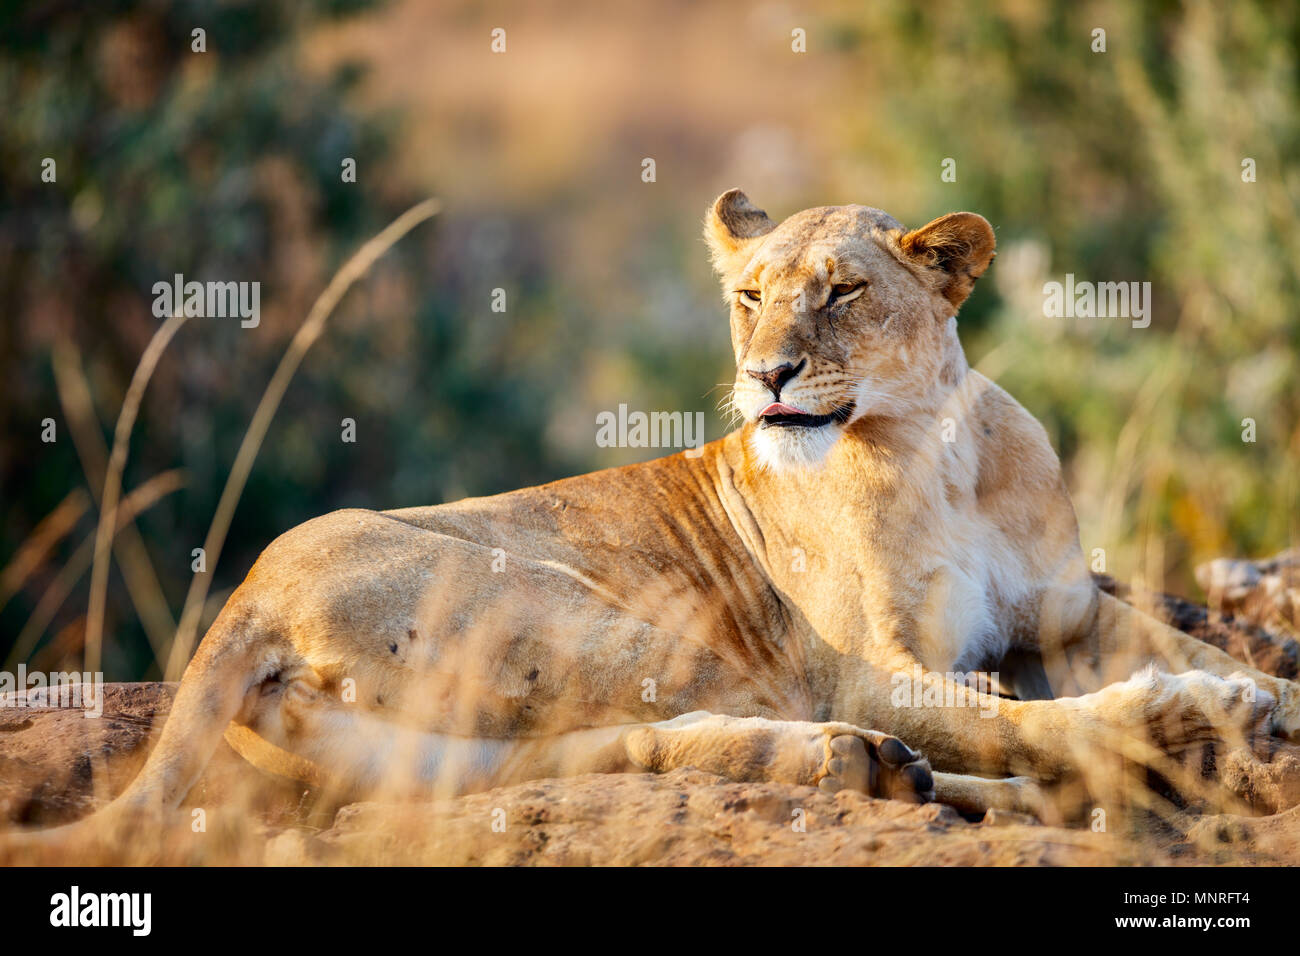 Female lion in national reserve in Kenya - Stock Image